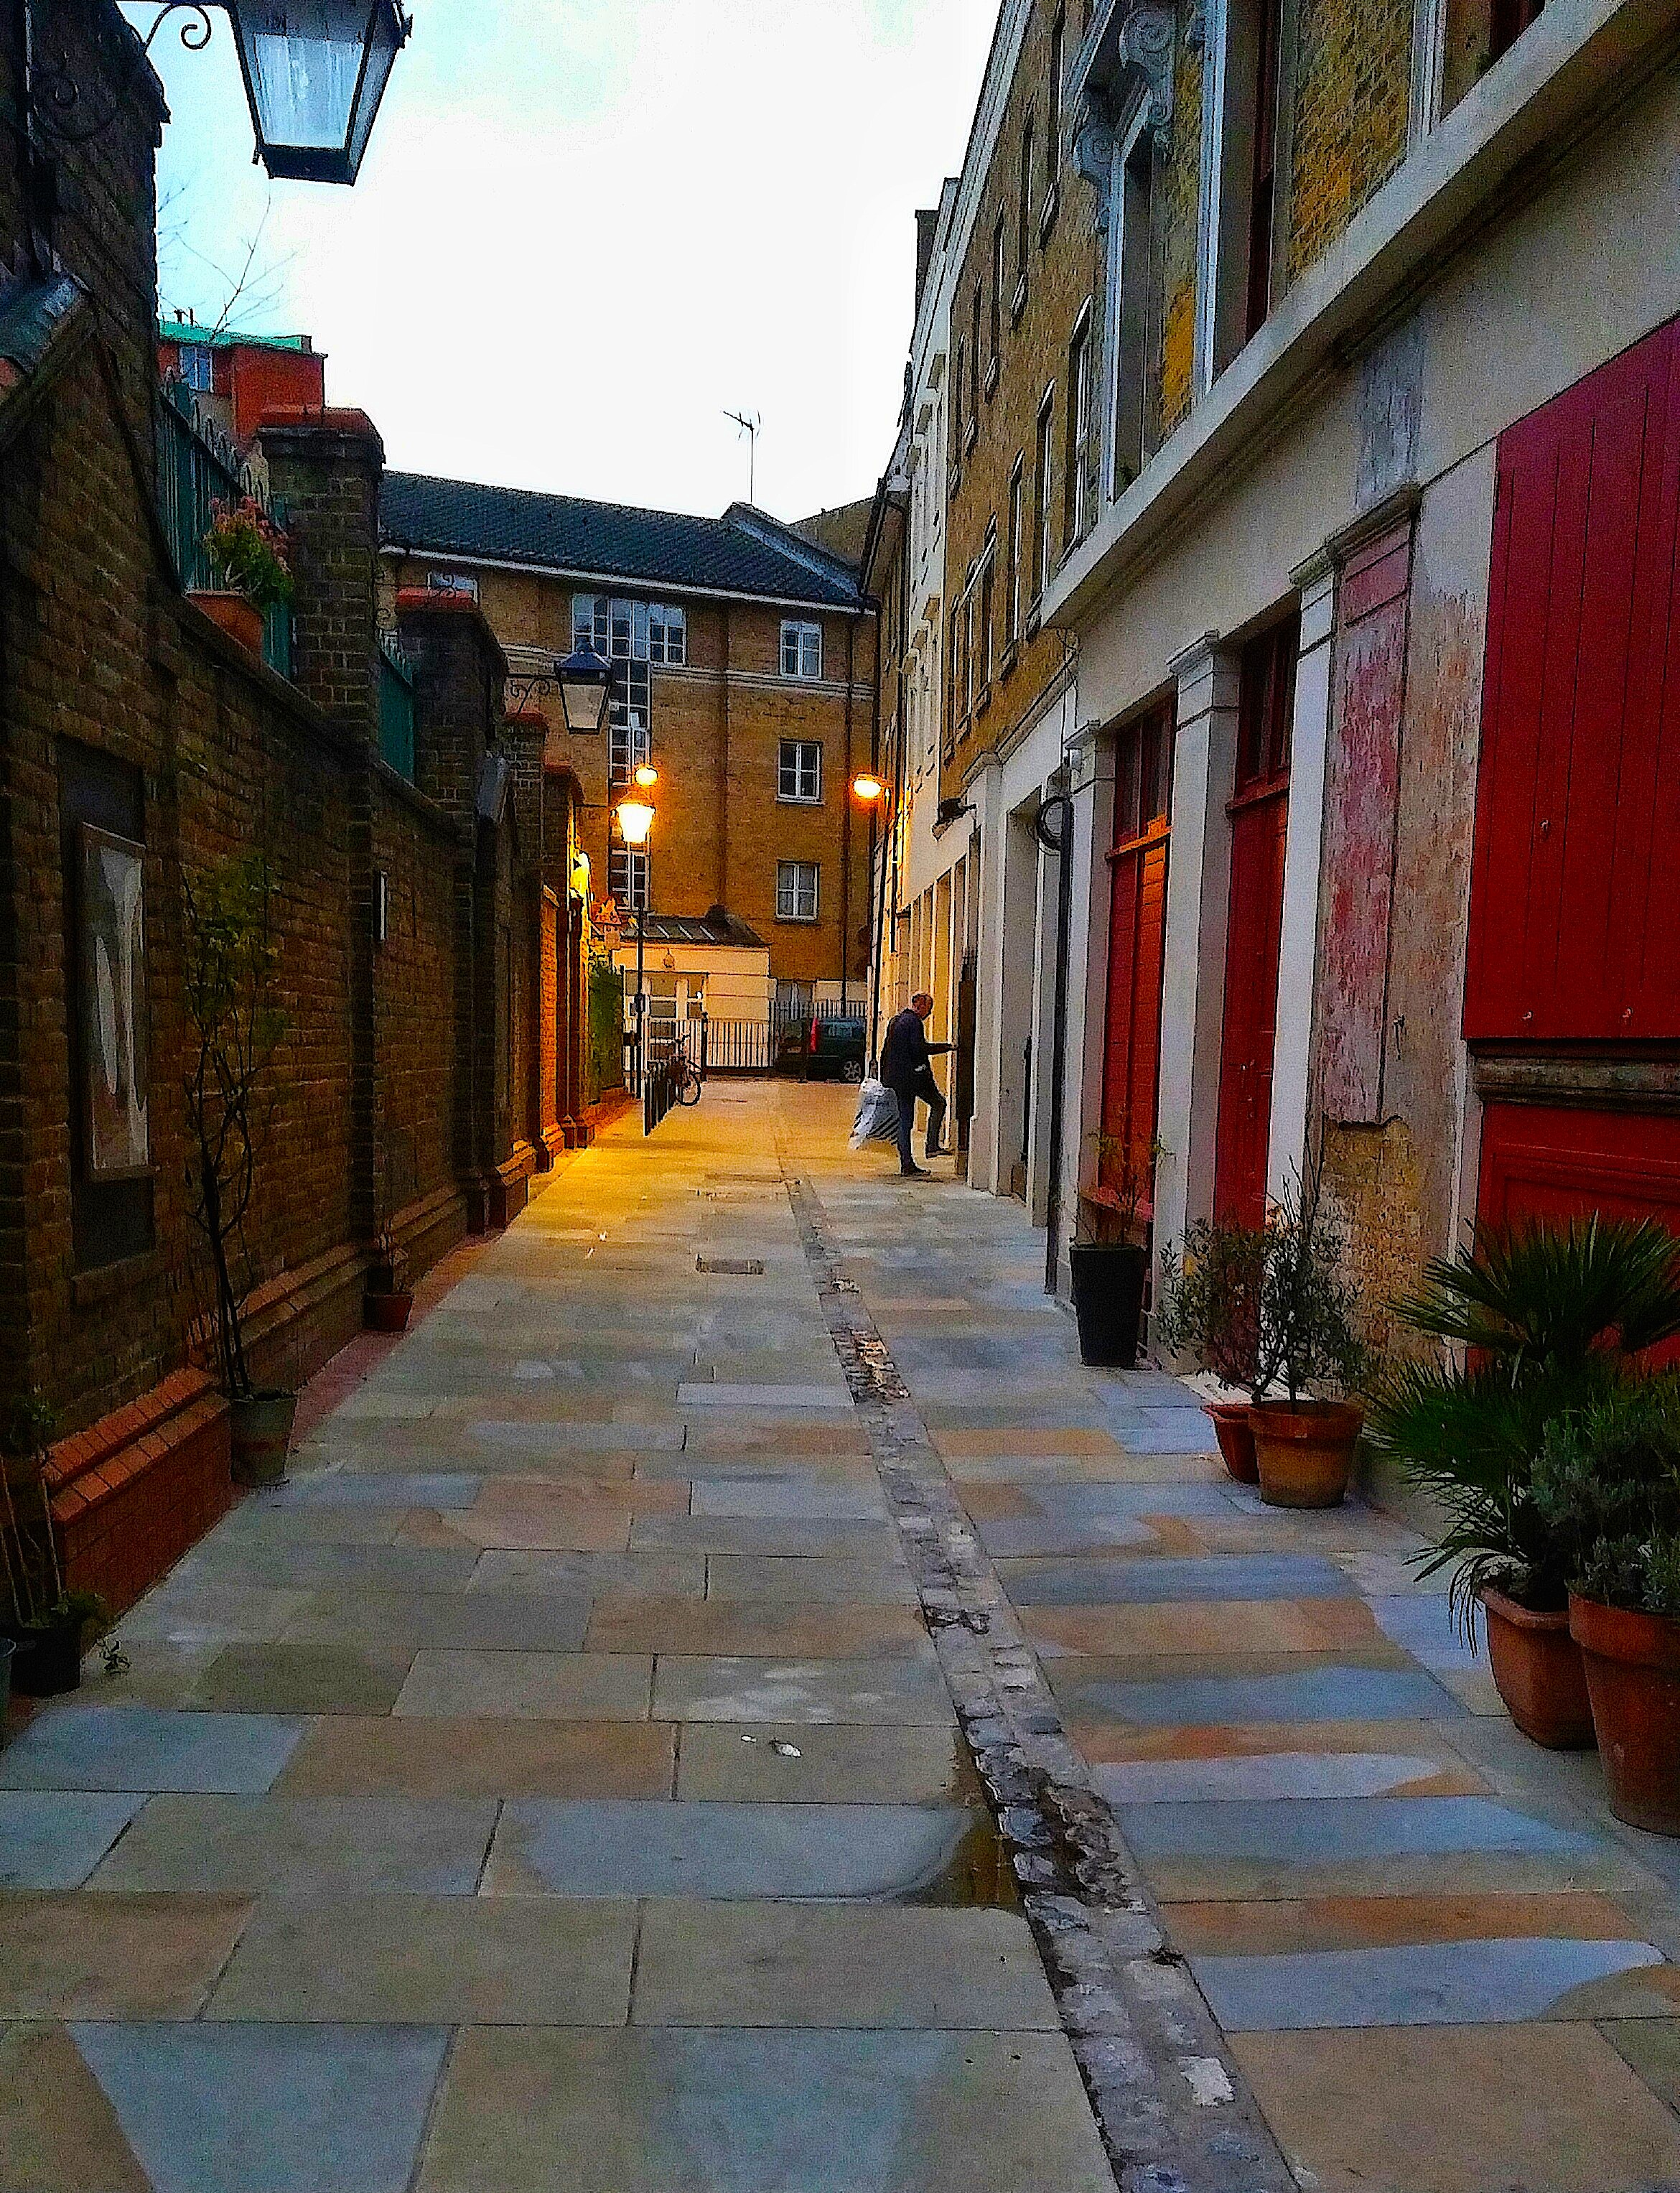 Historical Ensign Street in the   London Borough of Tower Hamlets